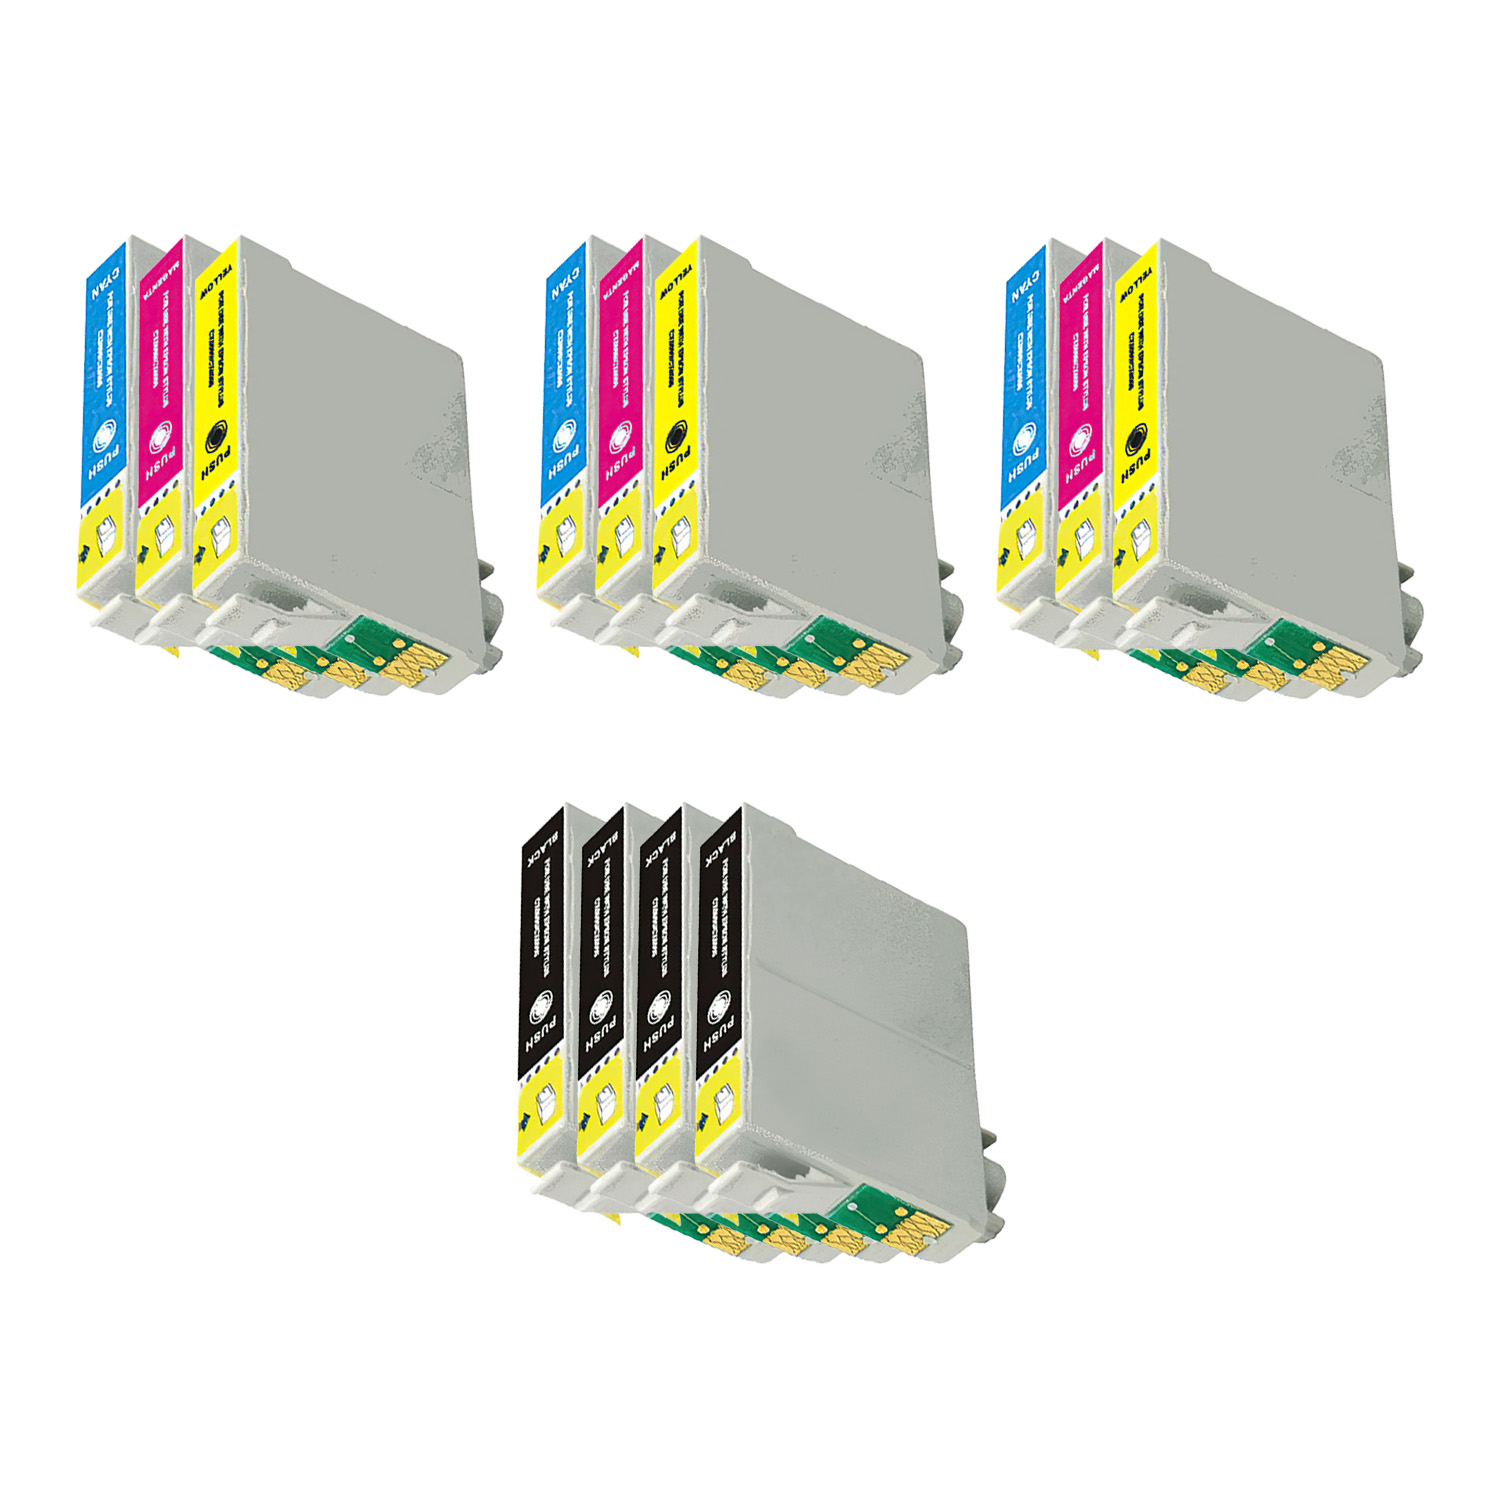 Remanufactured Epson 69-68 Inkjet High Capacity Pack - 13 Cartridges